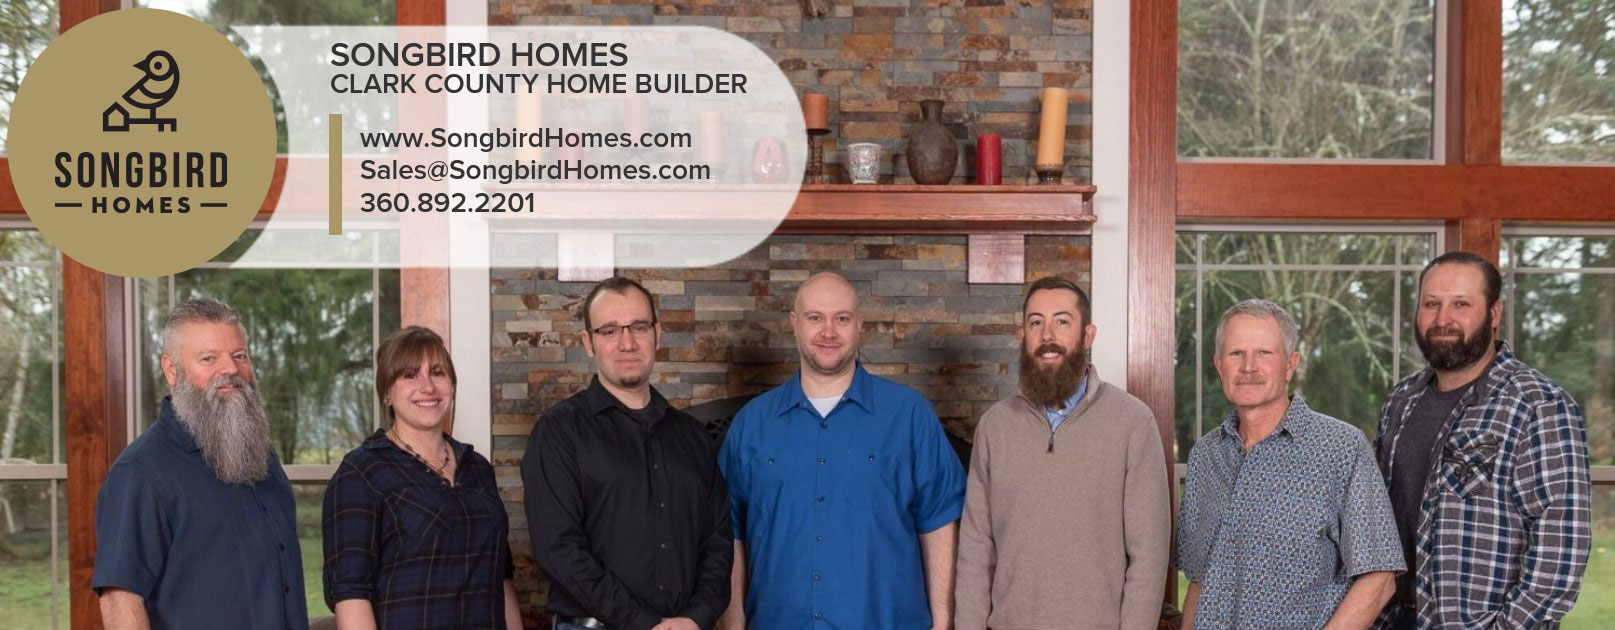 songbird-homes-team